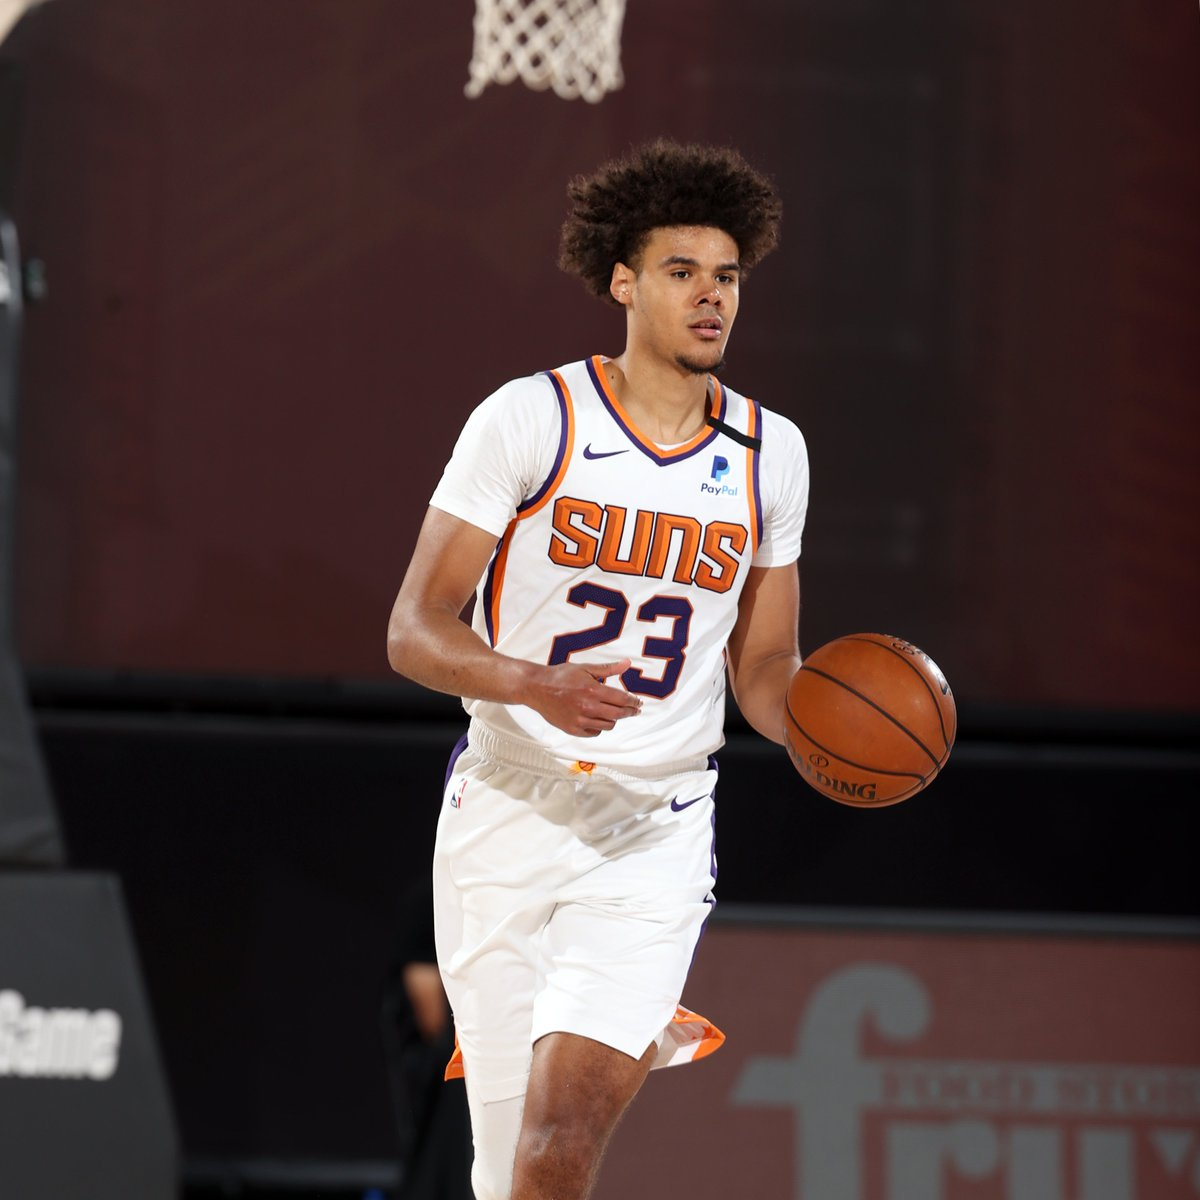 50/40/90 splits for @Suns in Orlando:  Cam Johnson:  50.8 FG% | 40.0 3P% | 100 FT%  Dario Saric:  53.1 FG% | 43.8 3P% | 92.6 FT%  Jevon Carter:  50.0 FG% | 52.2 3P% | 100 FT%  Phoenix looks to win 7th straight as it takes on PHI at 4:30pm/et on NBA LP. https://t.co/l50C9EFXHq